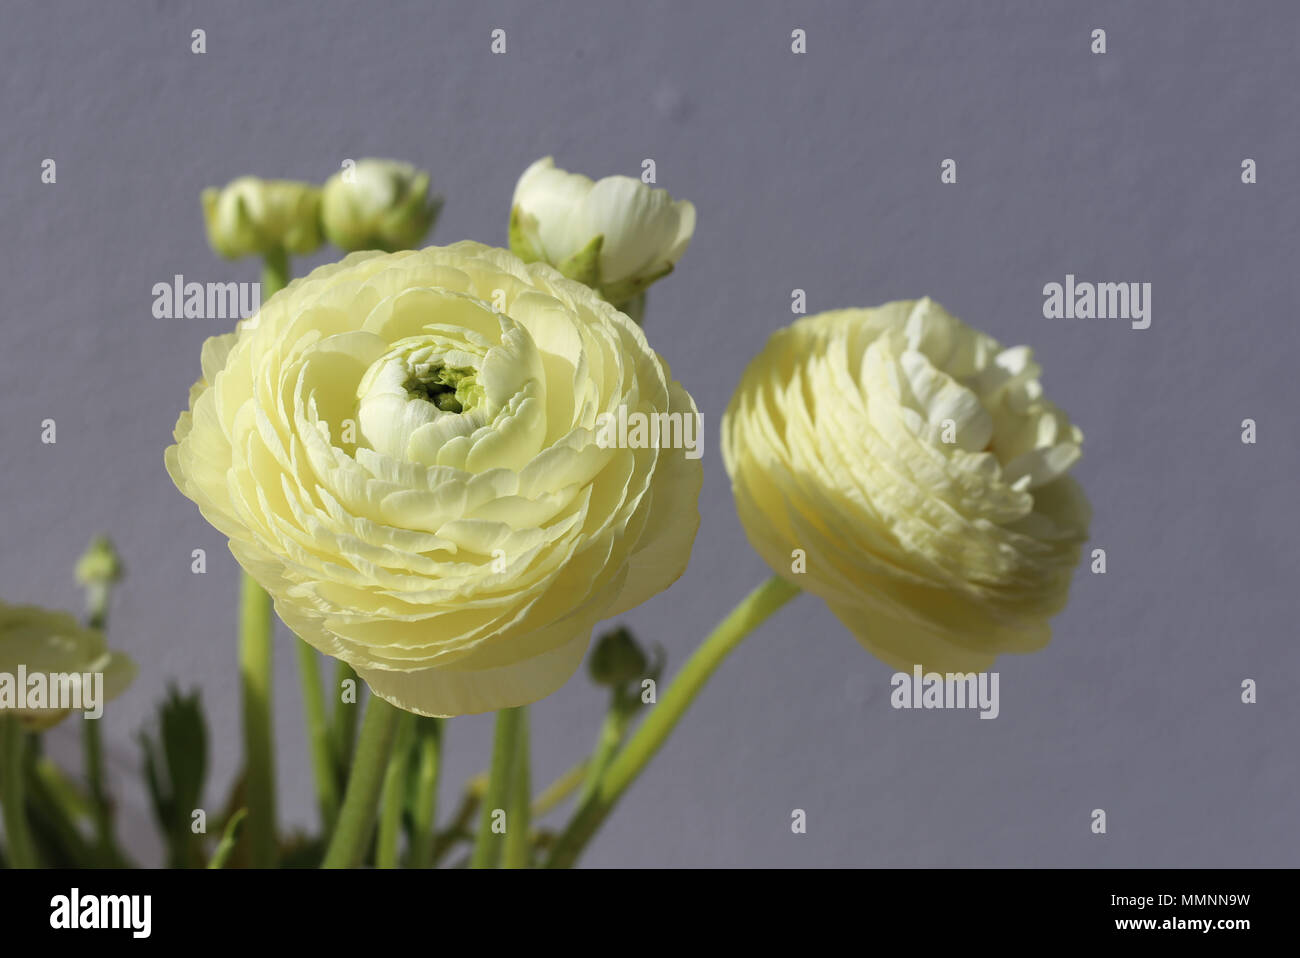 Natural White Light Yellow Flowers A Pretty Closeup Photo With